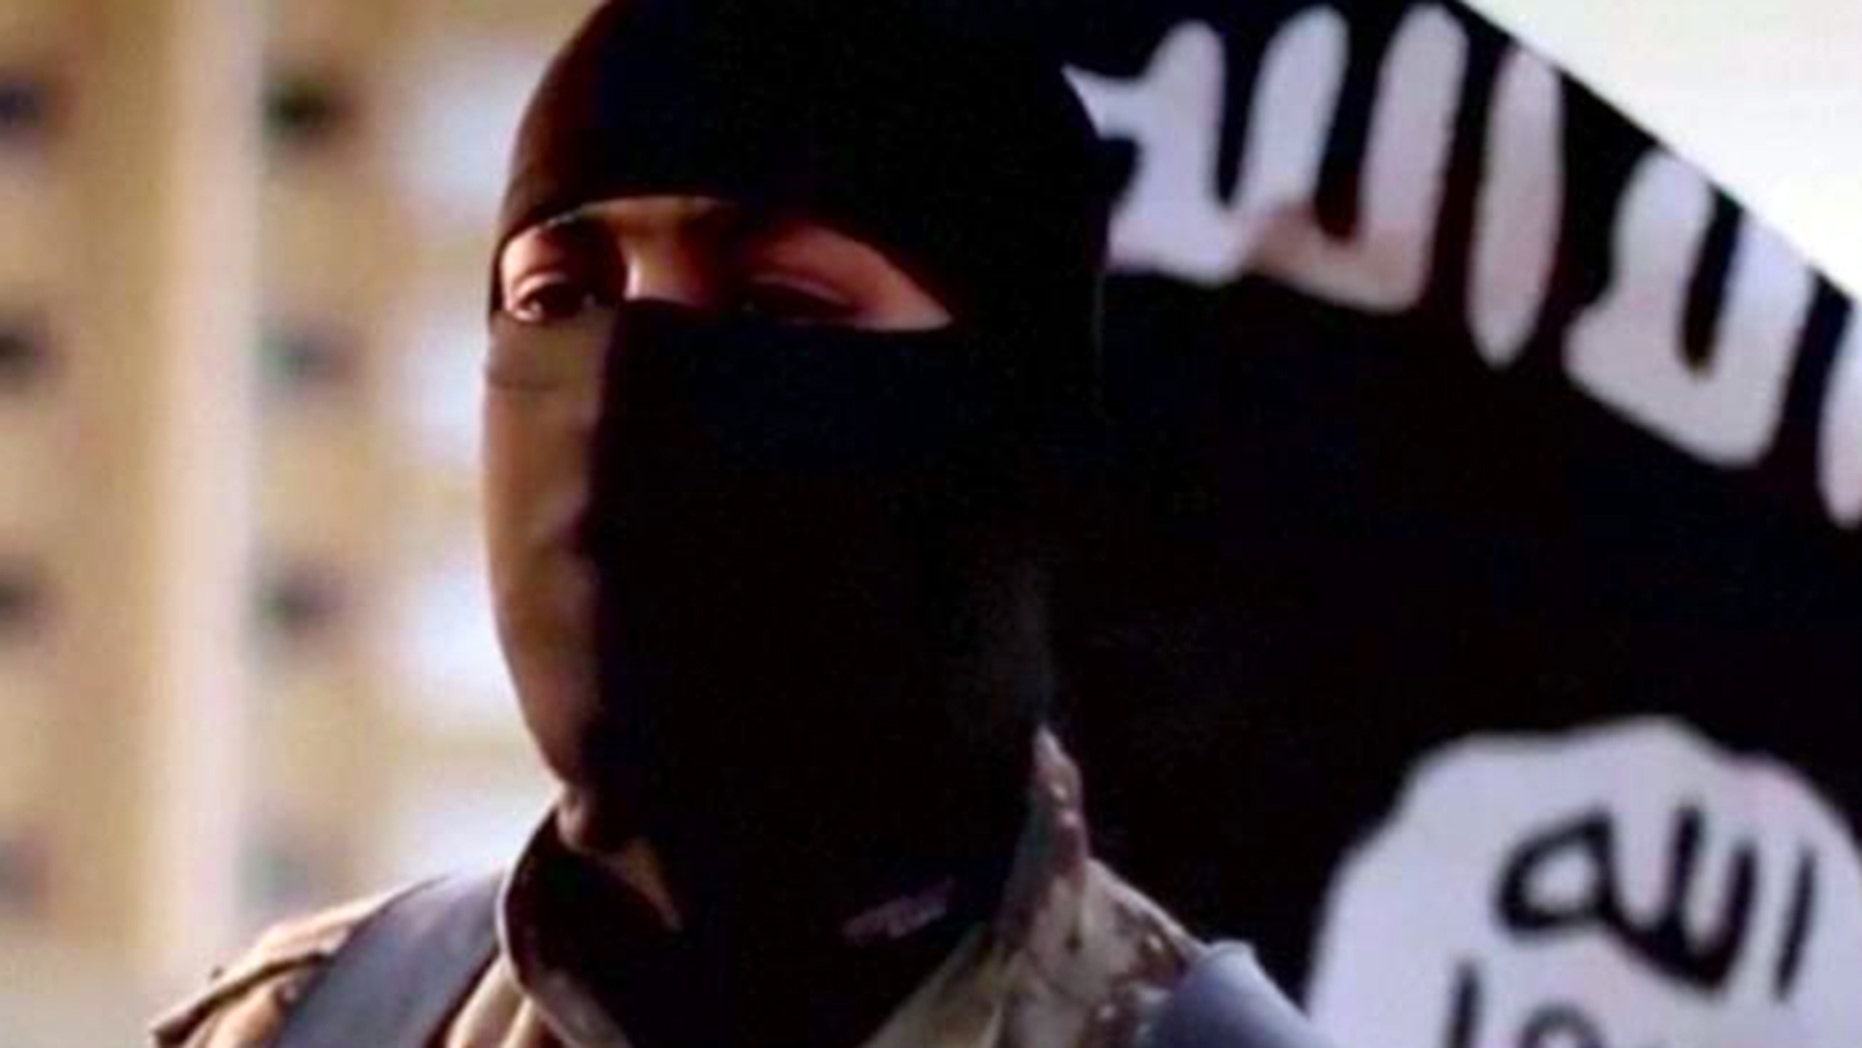 ISIS militants attacked a family of 12 in northern Iraq.